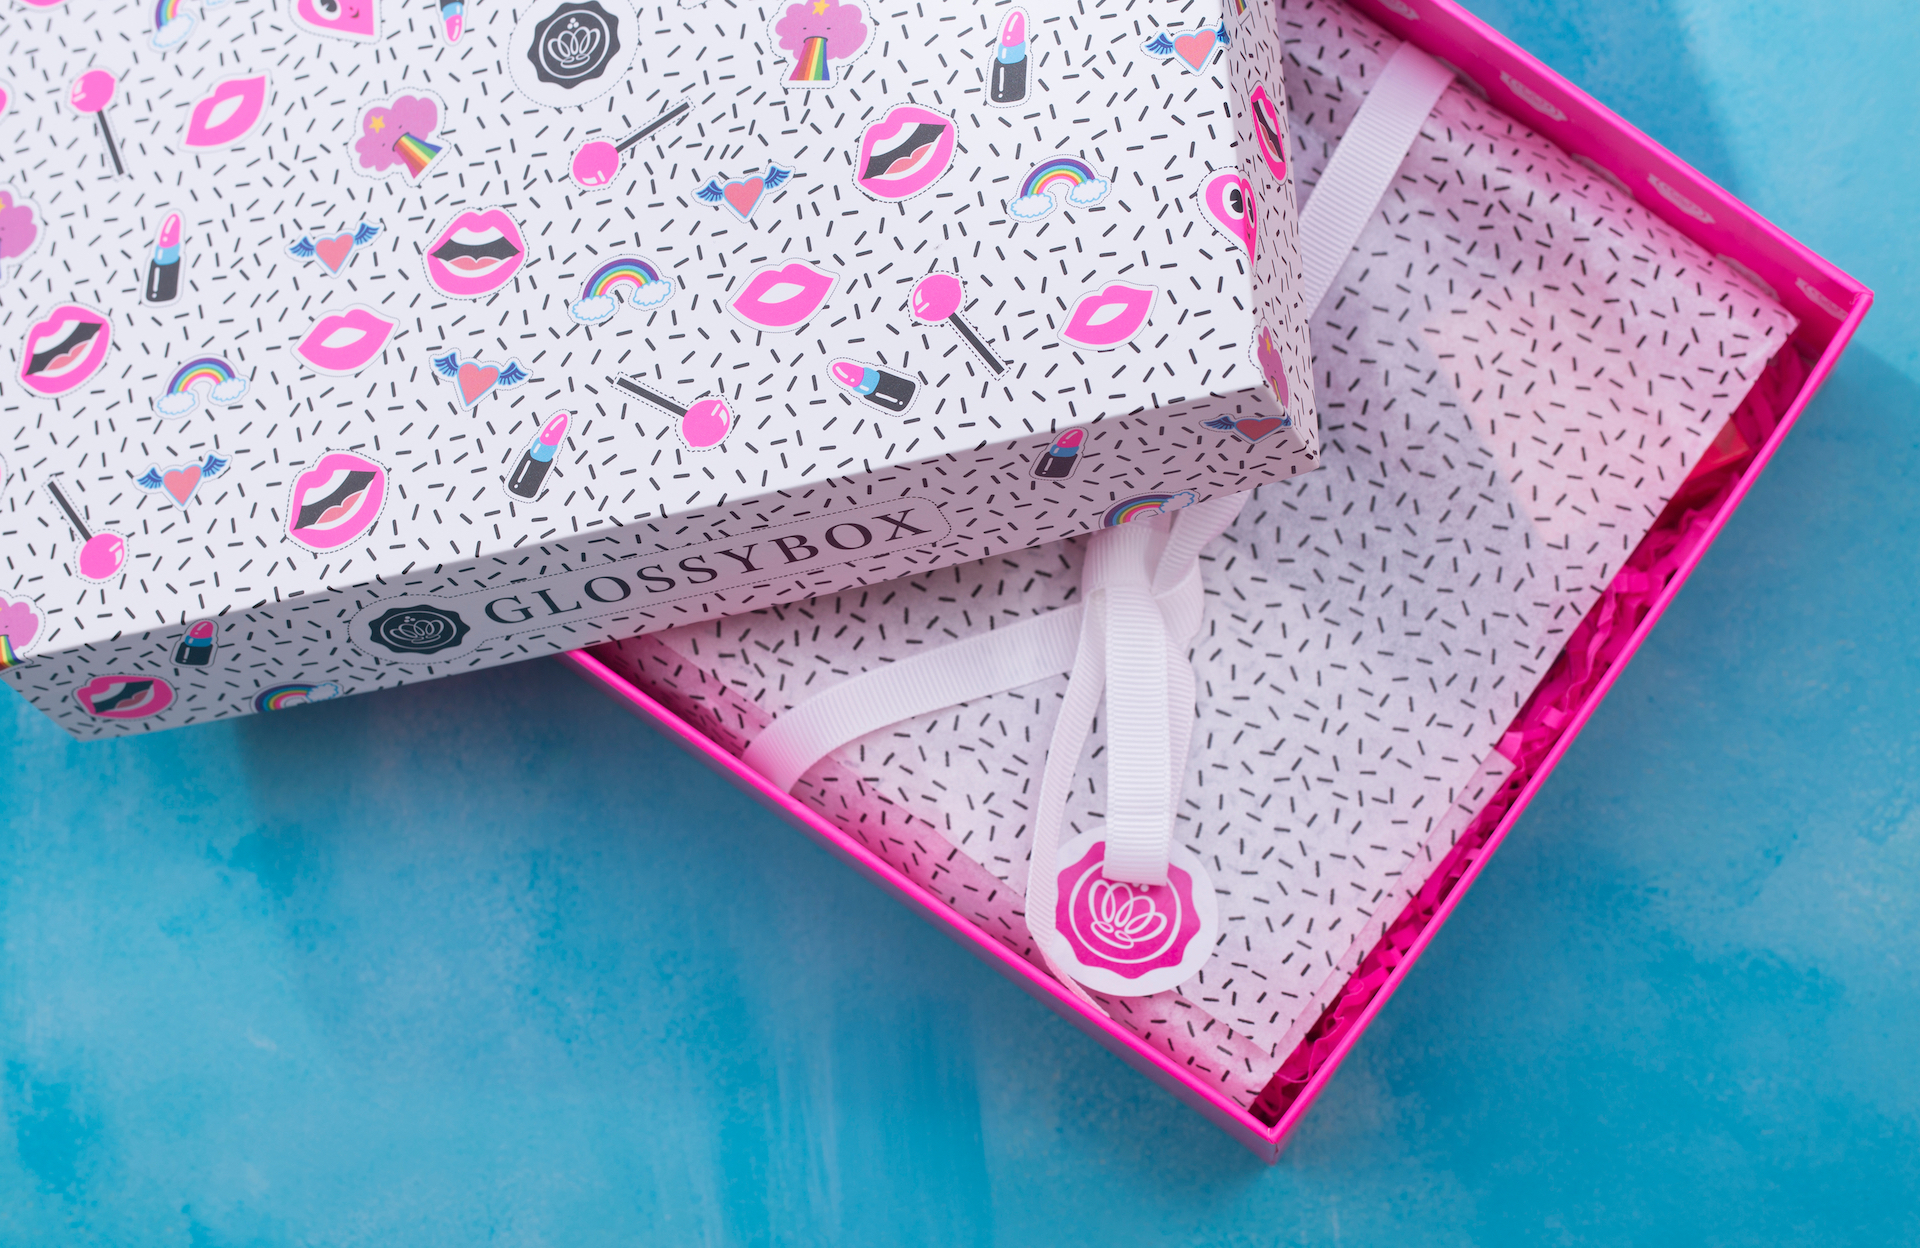 Glossybox with lid open